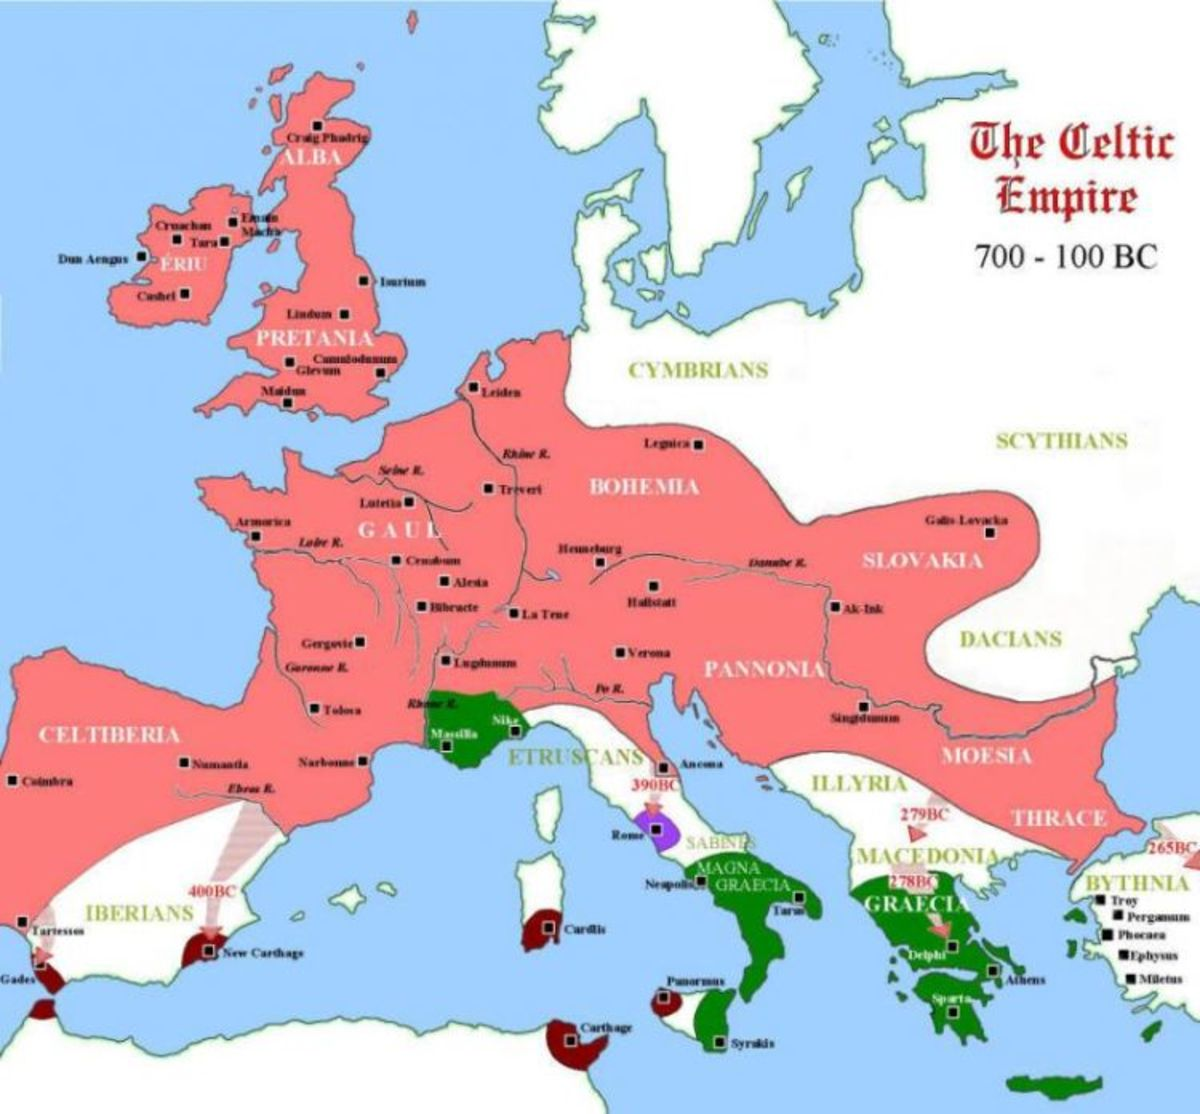 The Celts in Europe